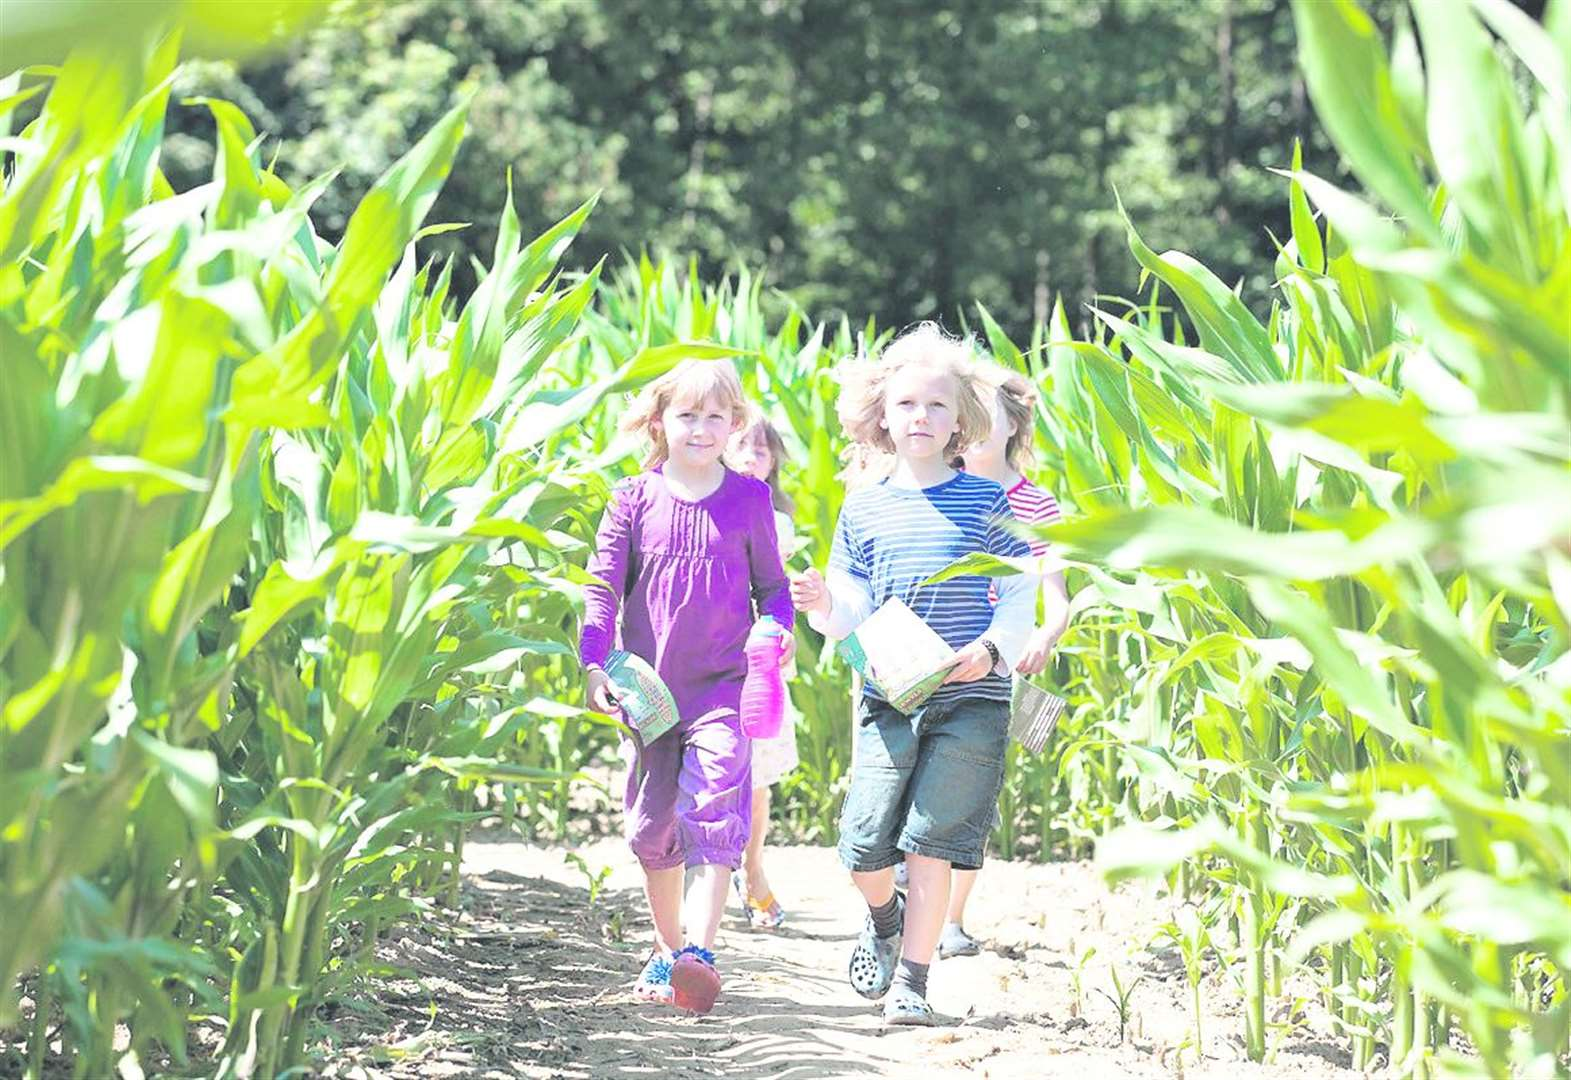 A Maize Maze moment to savour